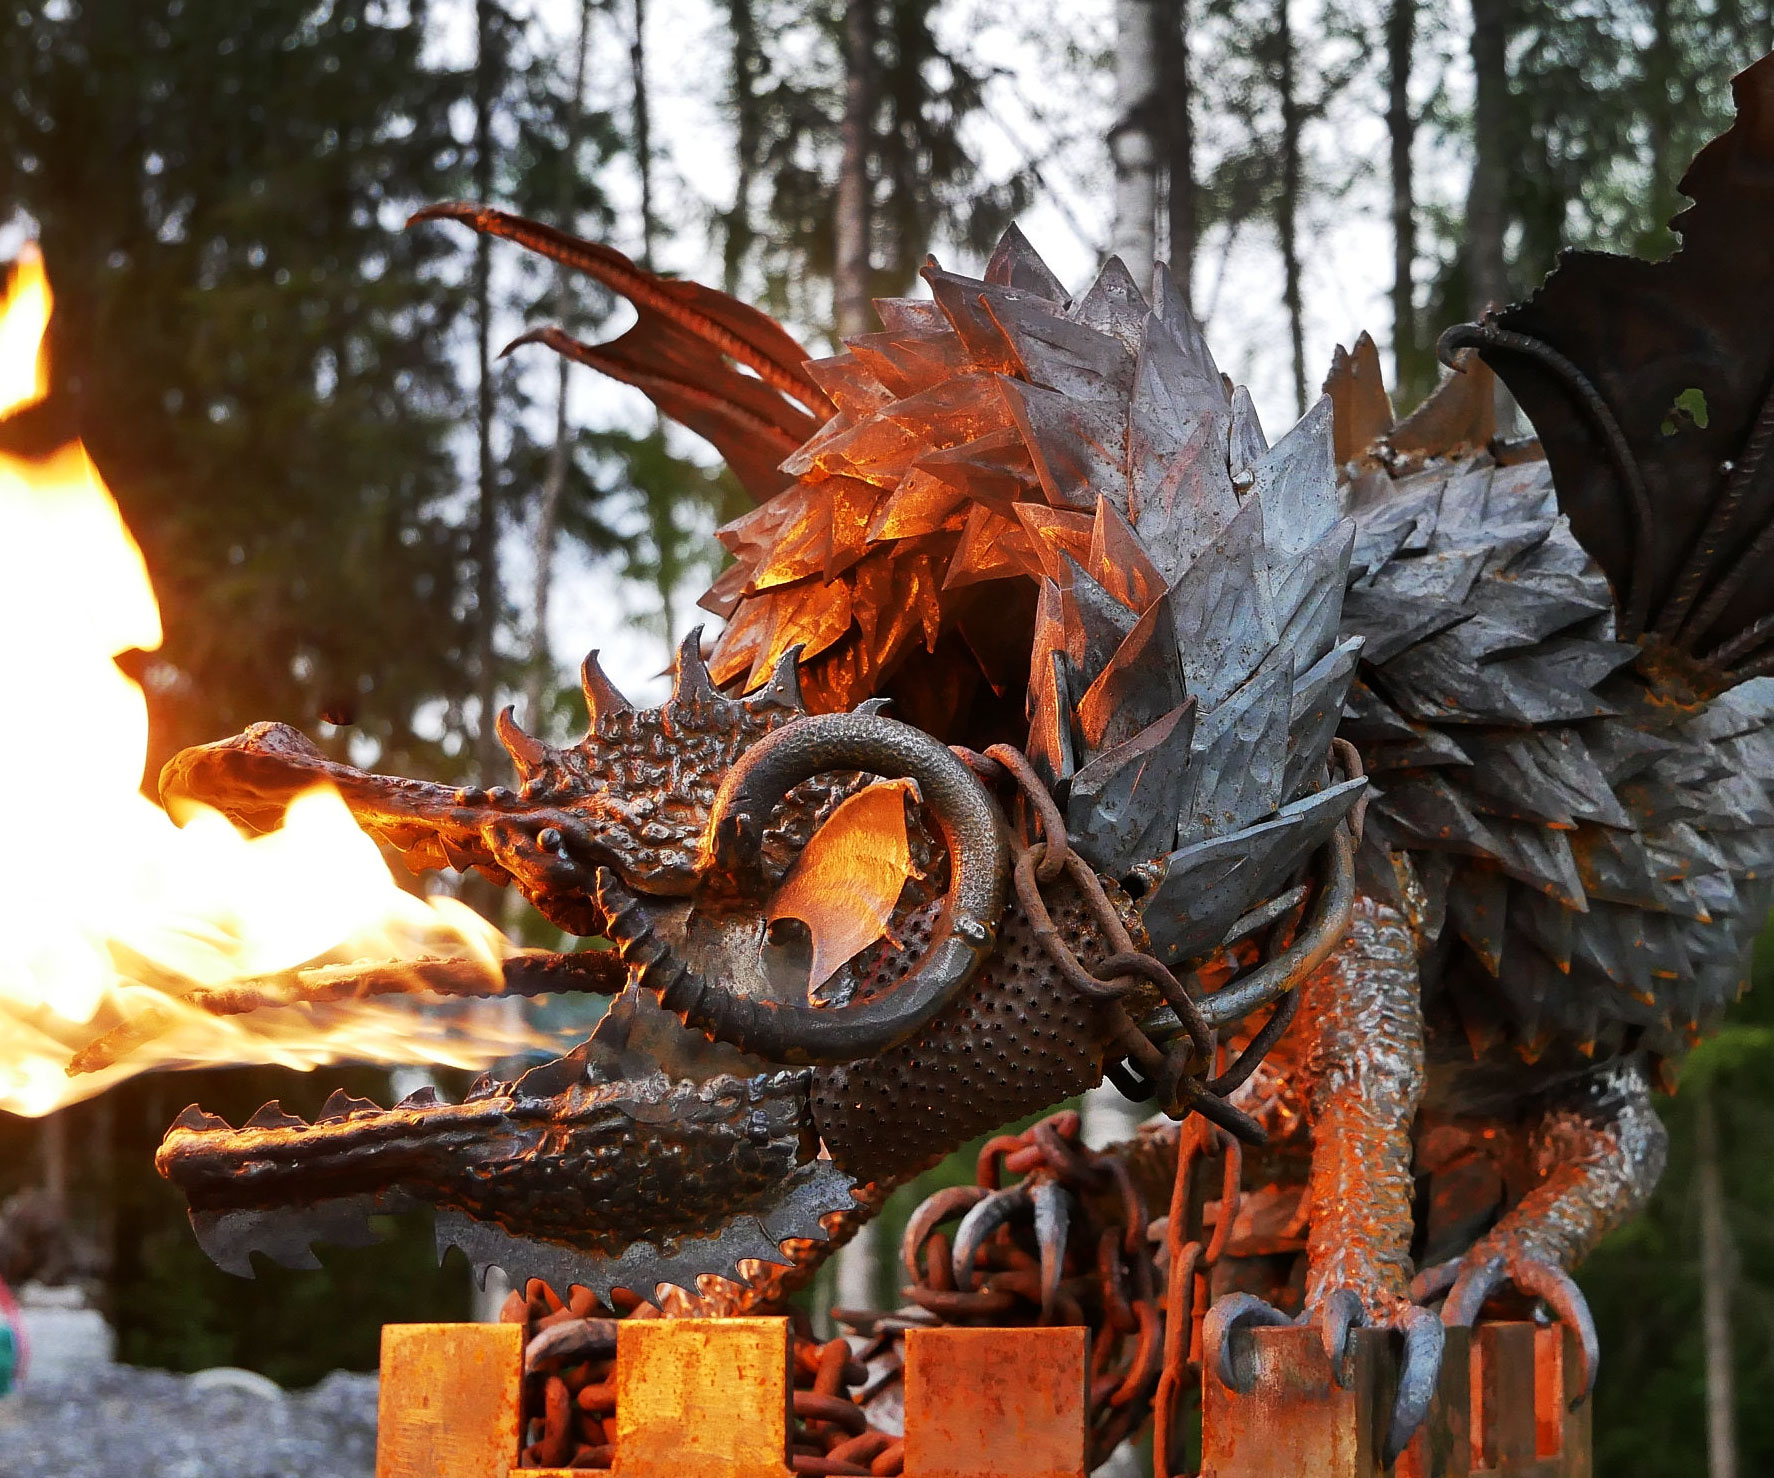 Fire Breathing Dragon Sculpture